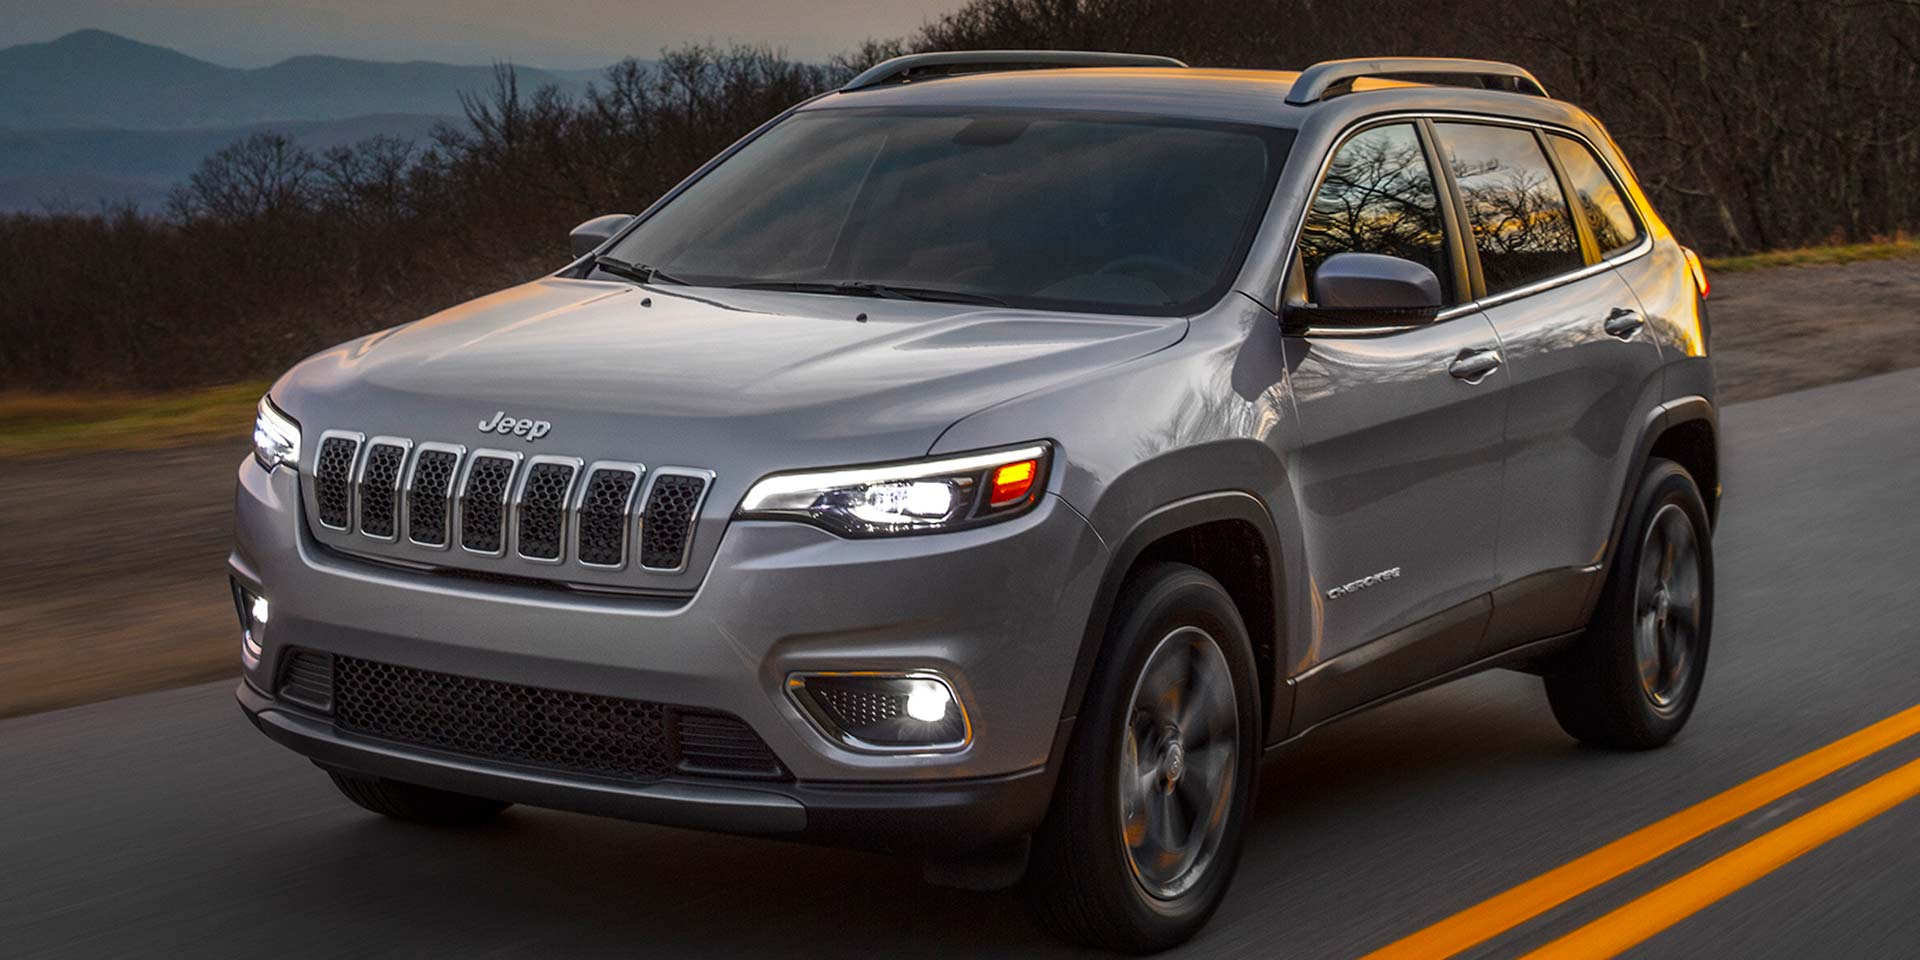 2019 Jeep Cherokee Vehicles On Display Chicago Auto Show